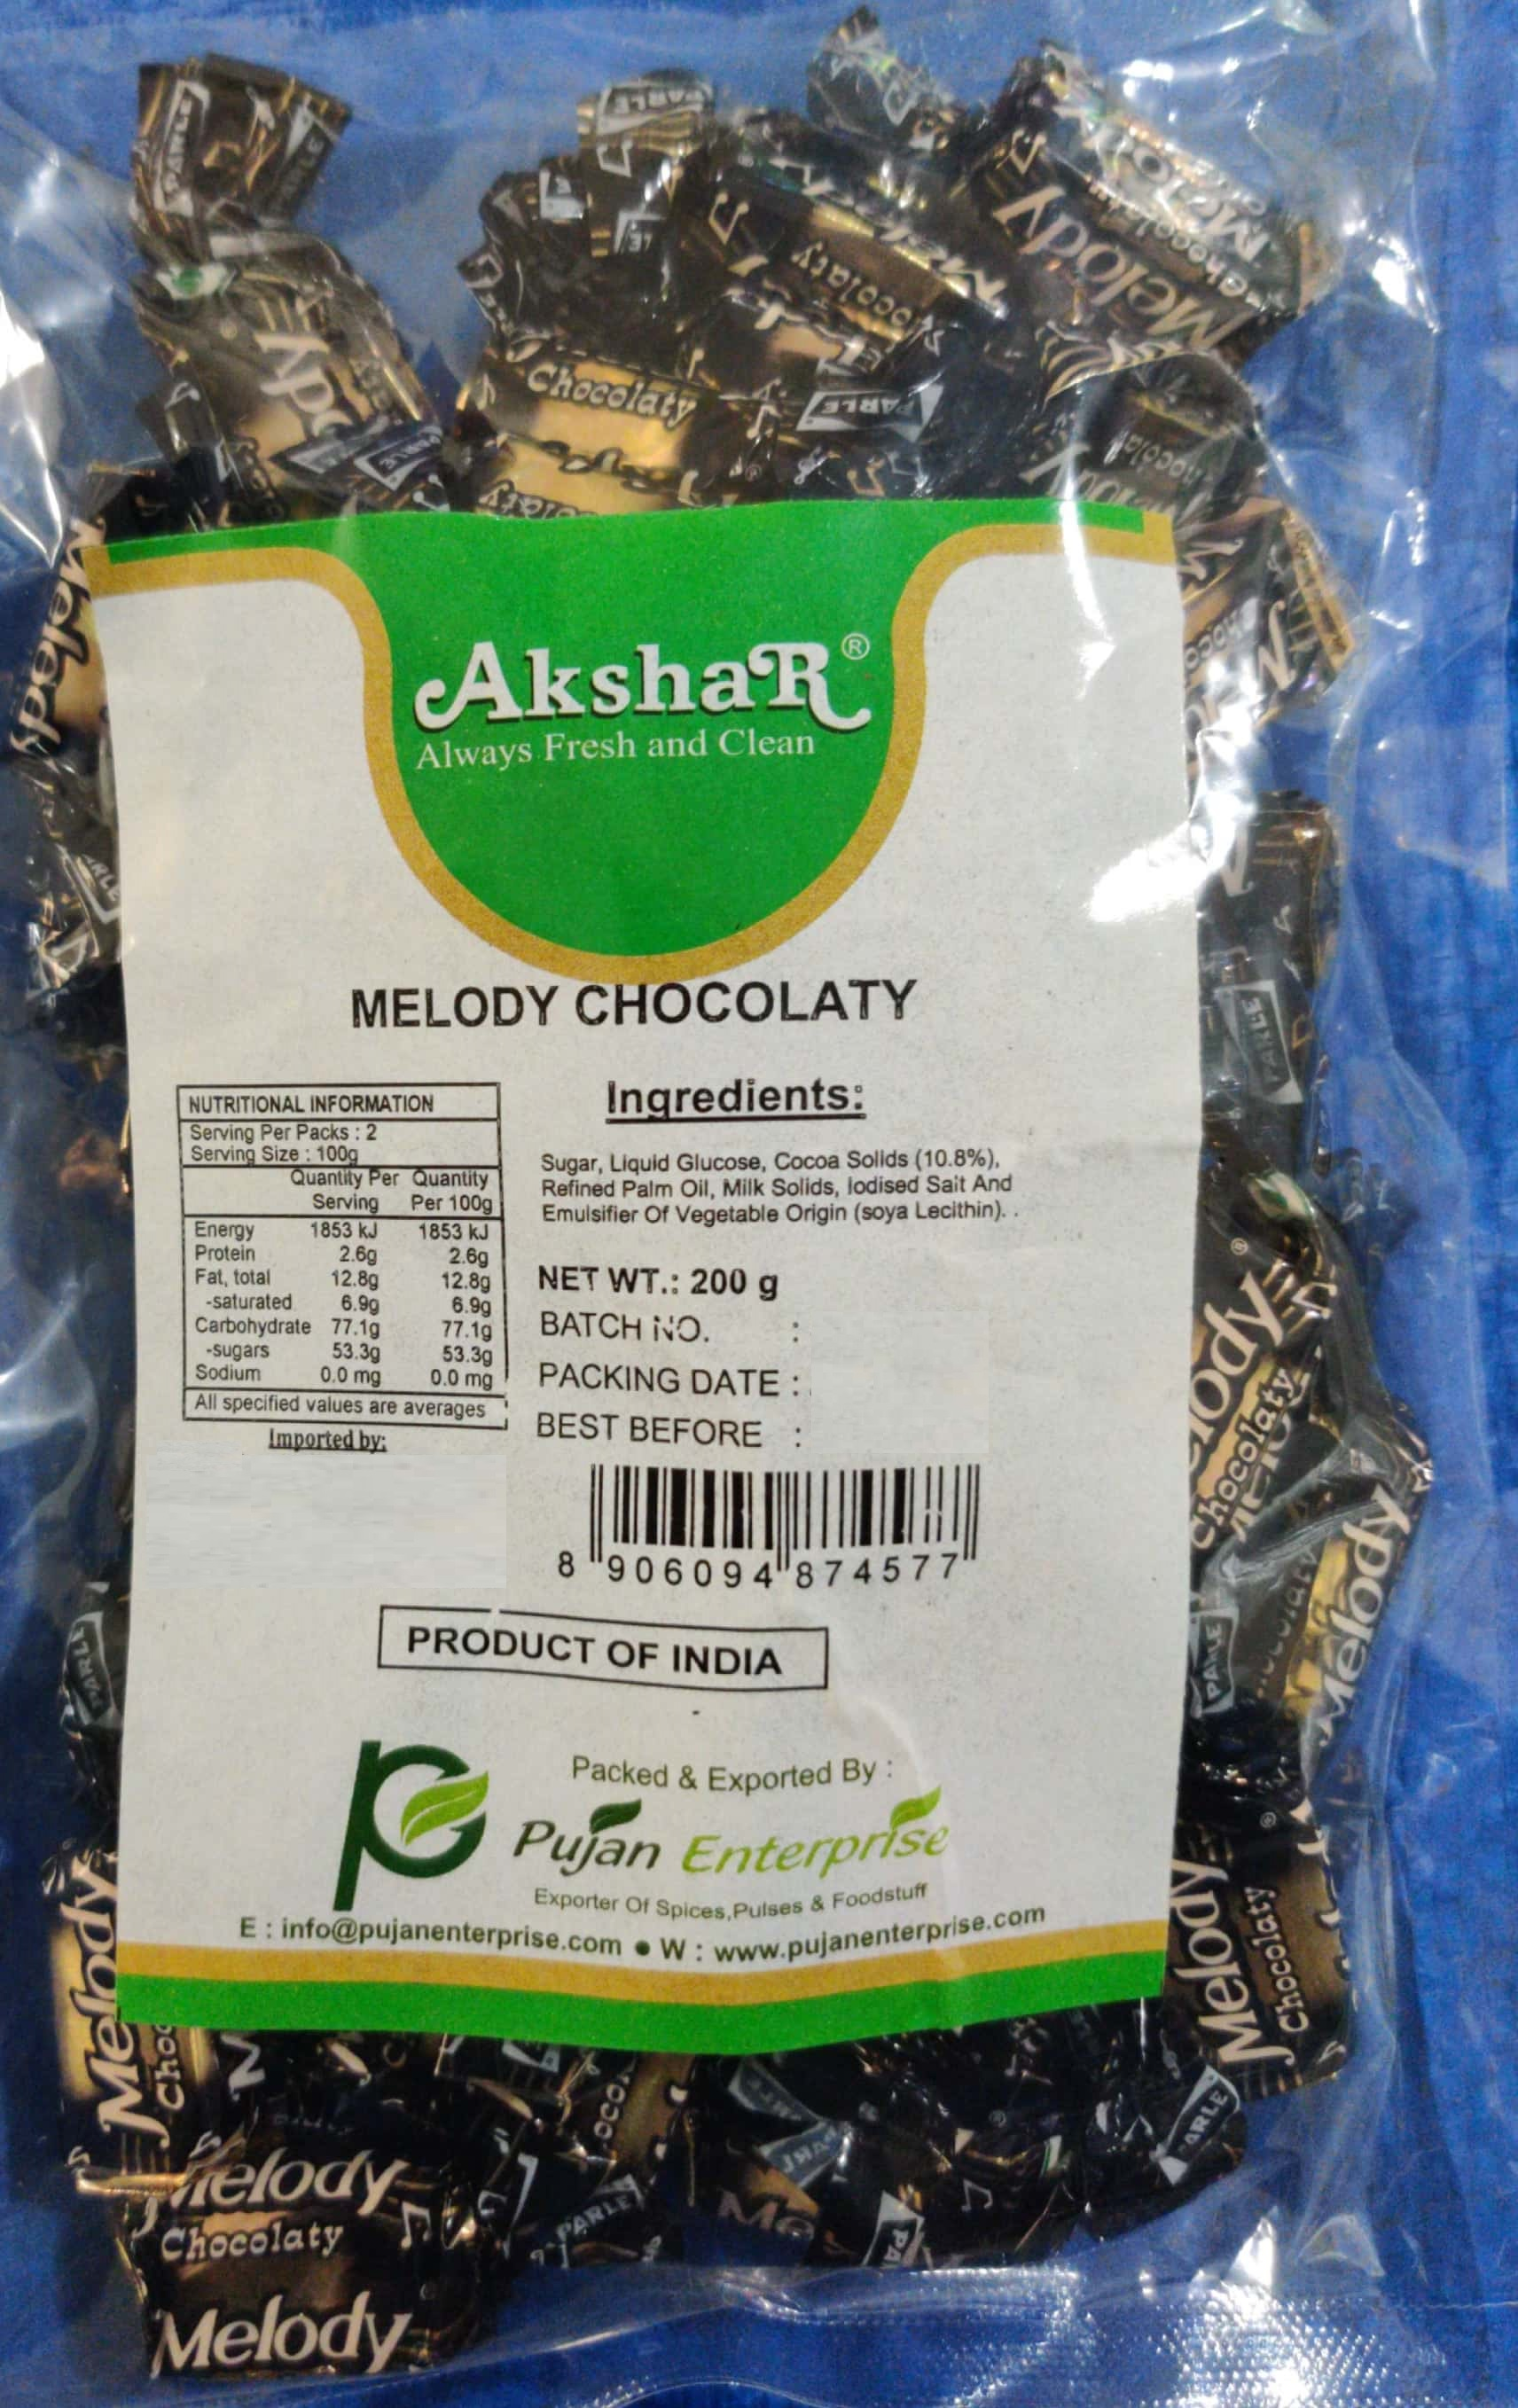 MELODY CHOCOLATY